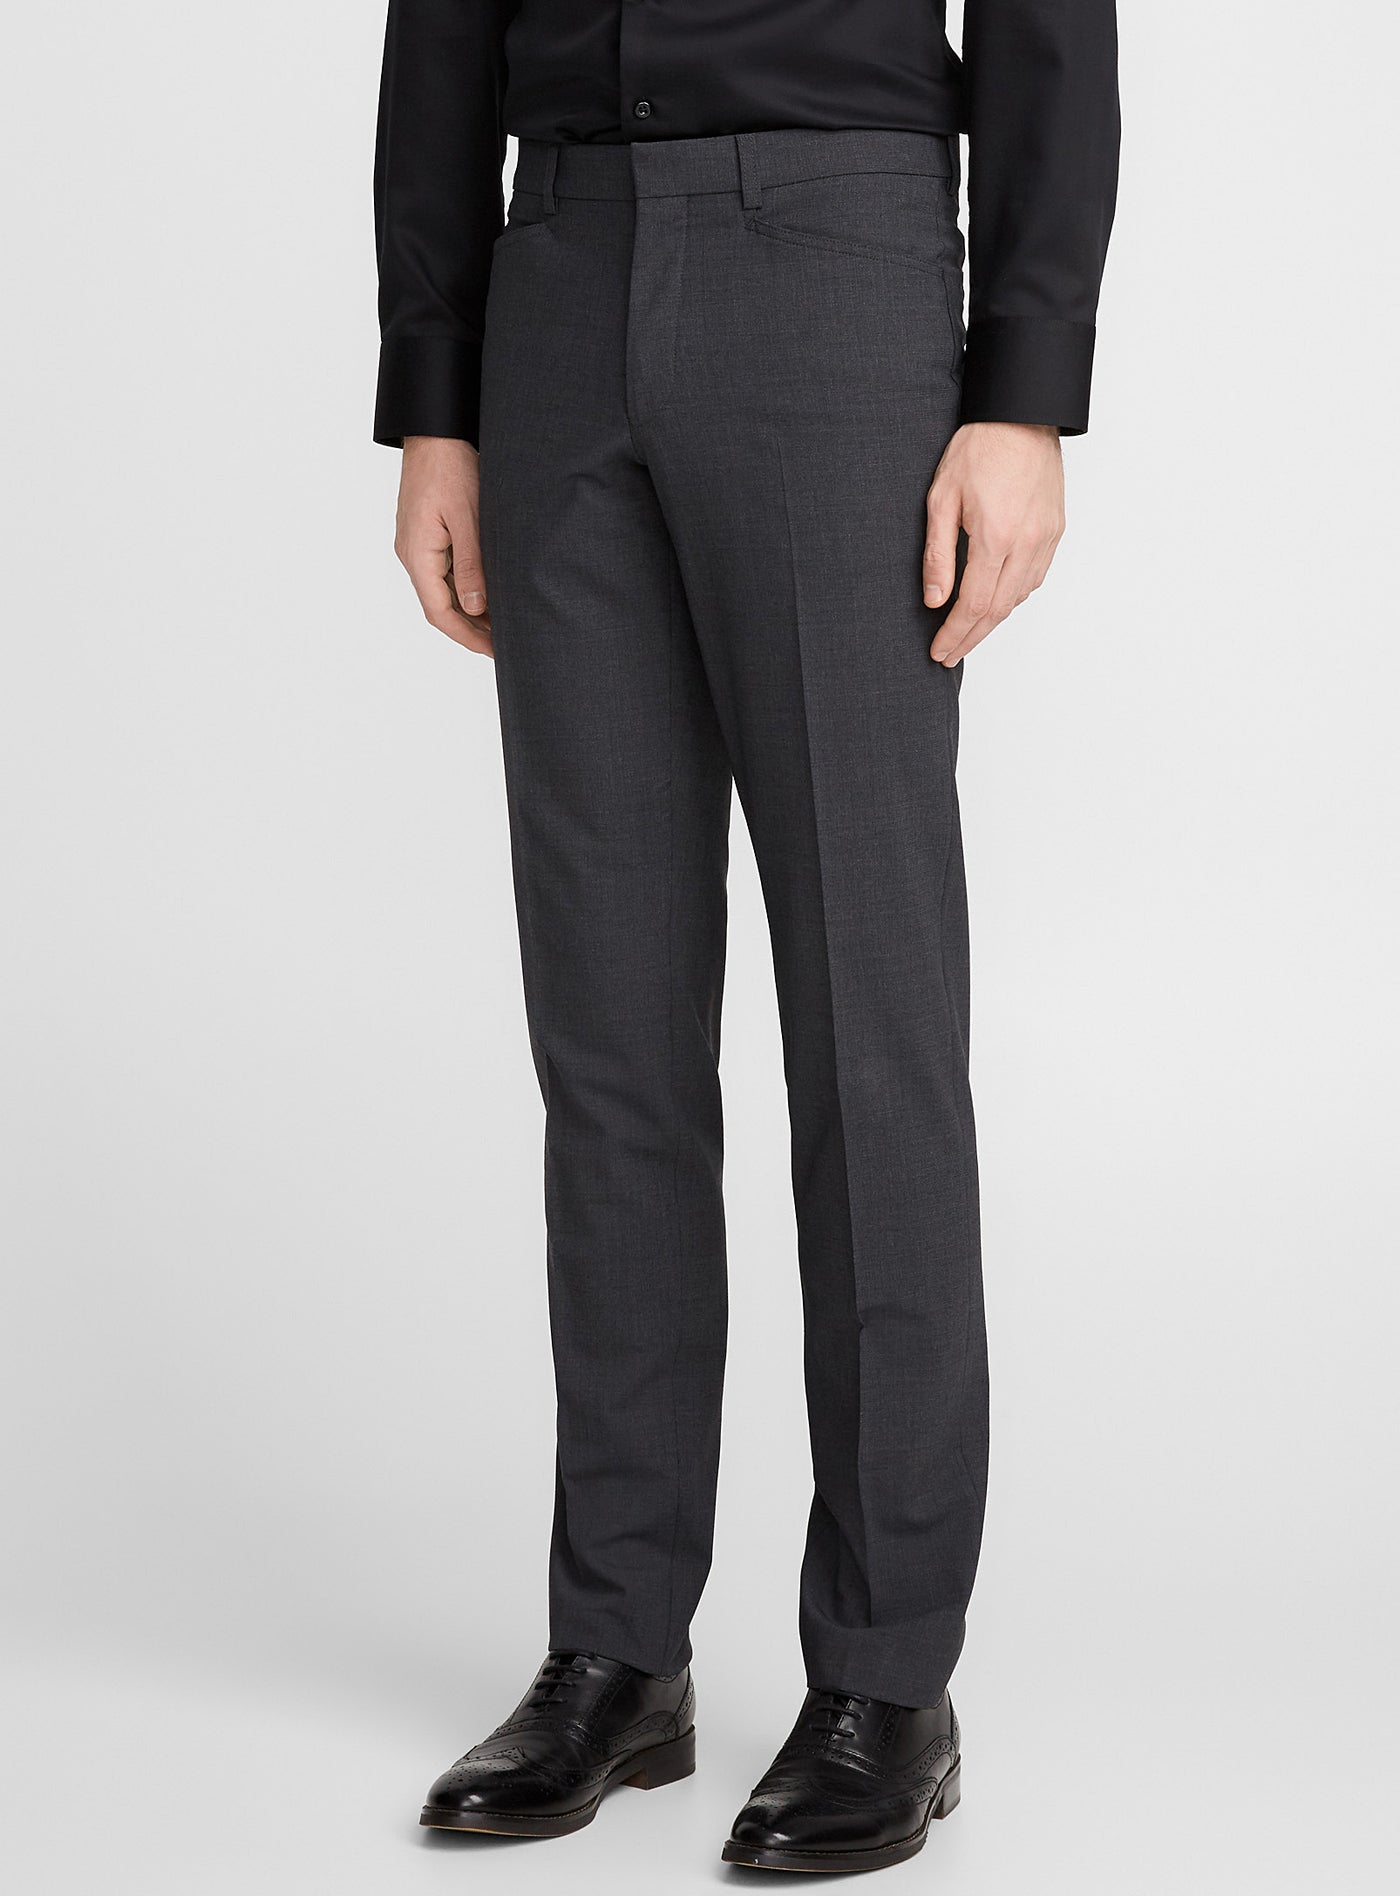 8d2ab1ca4c12 Franco • Charcoal • Travel Pants • Slim Fit • Stretch • Riviera by Jack  Victor ...